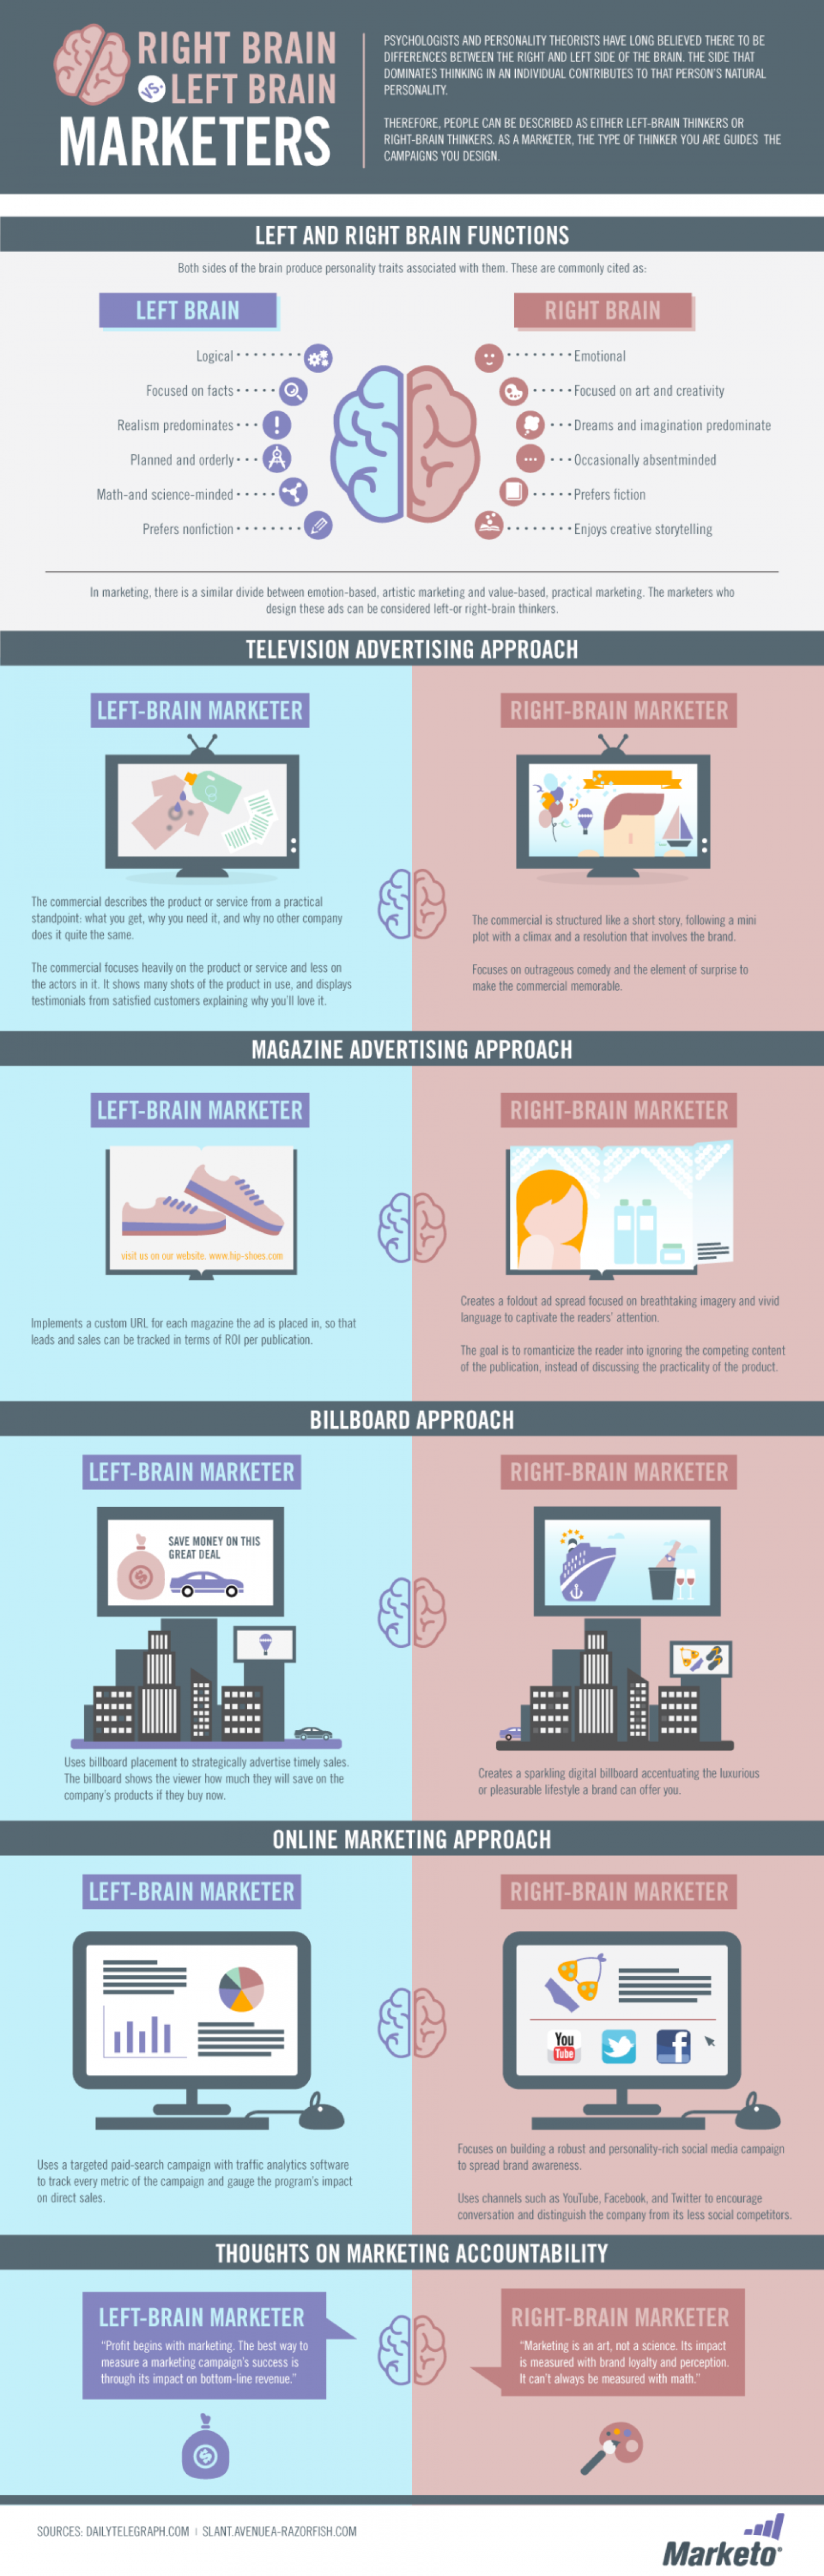 Are you a Right-Brain or a Left-Brain Marketer? Infographic